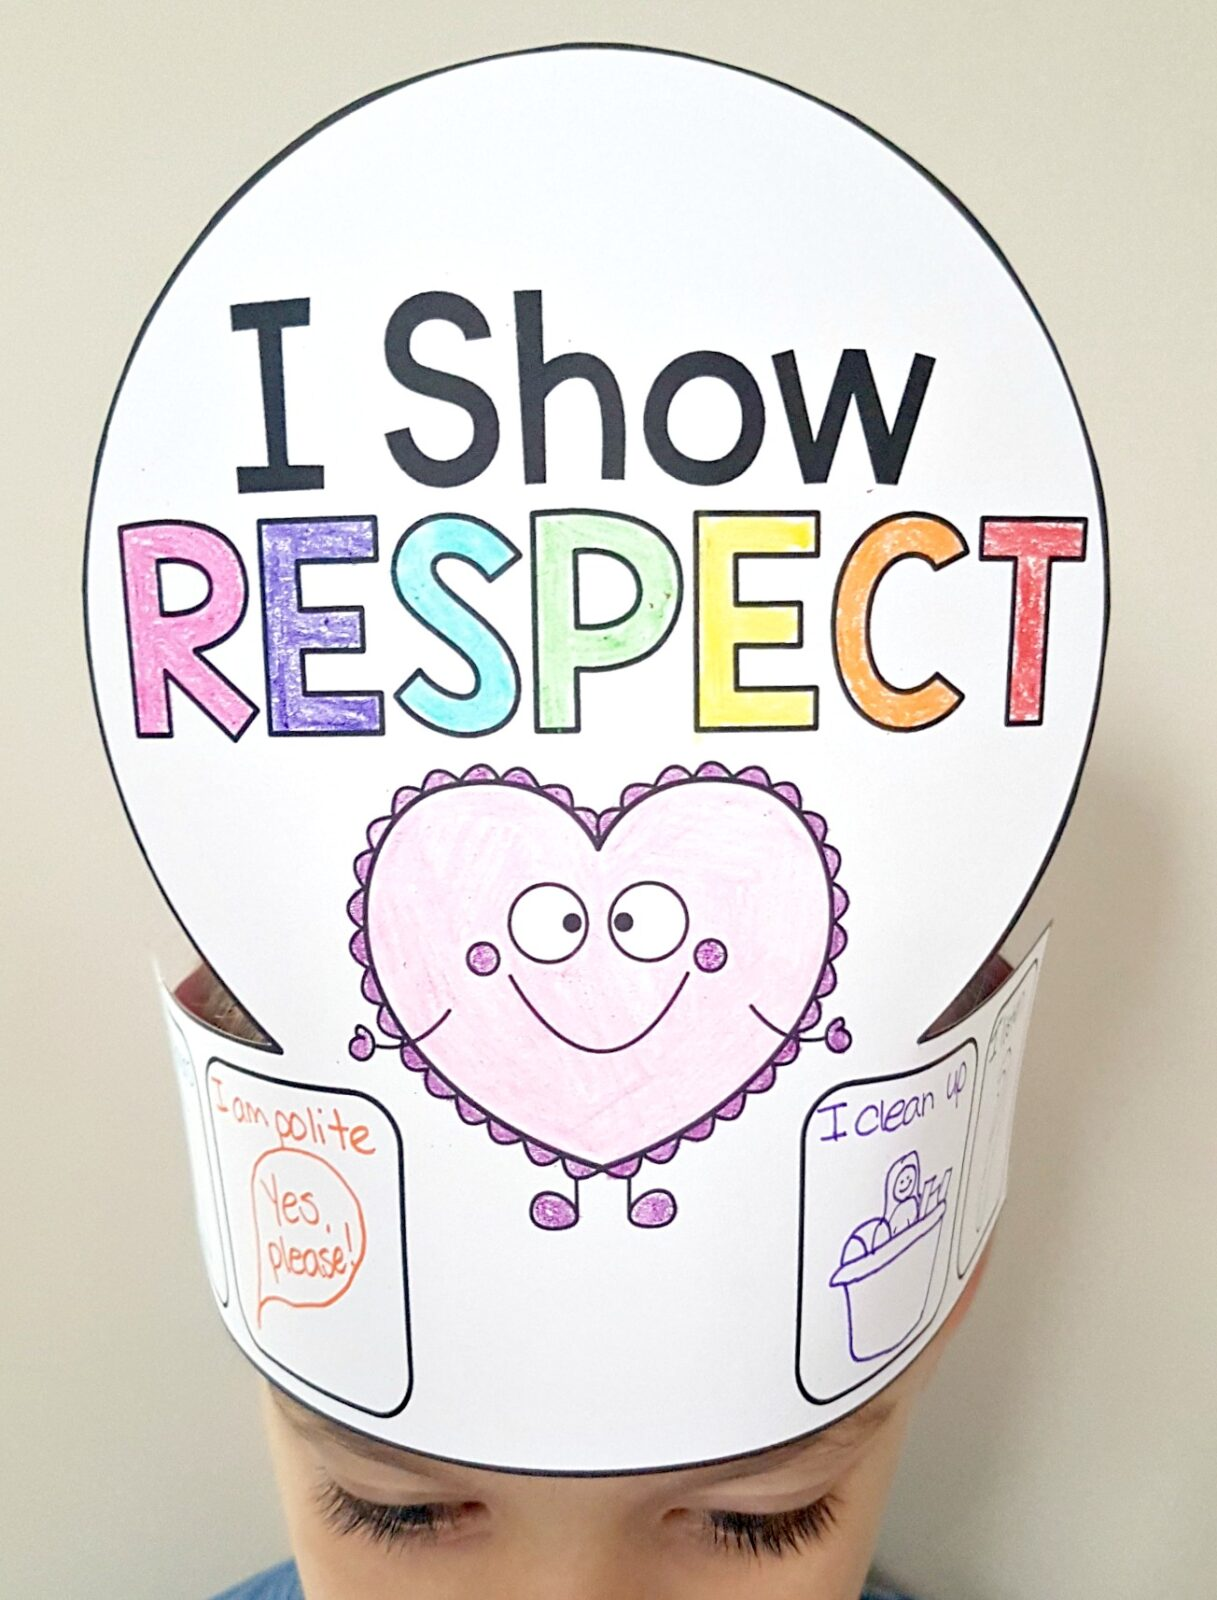 I show respect hat craft with examples on head of child